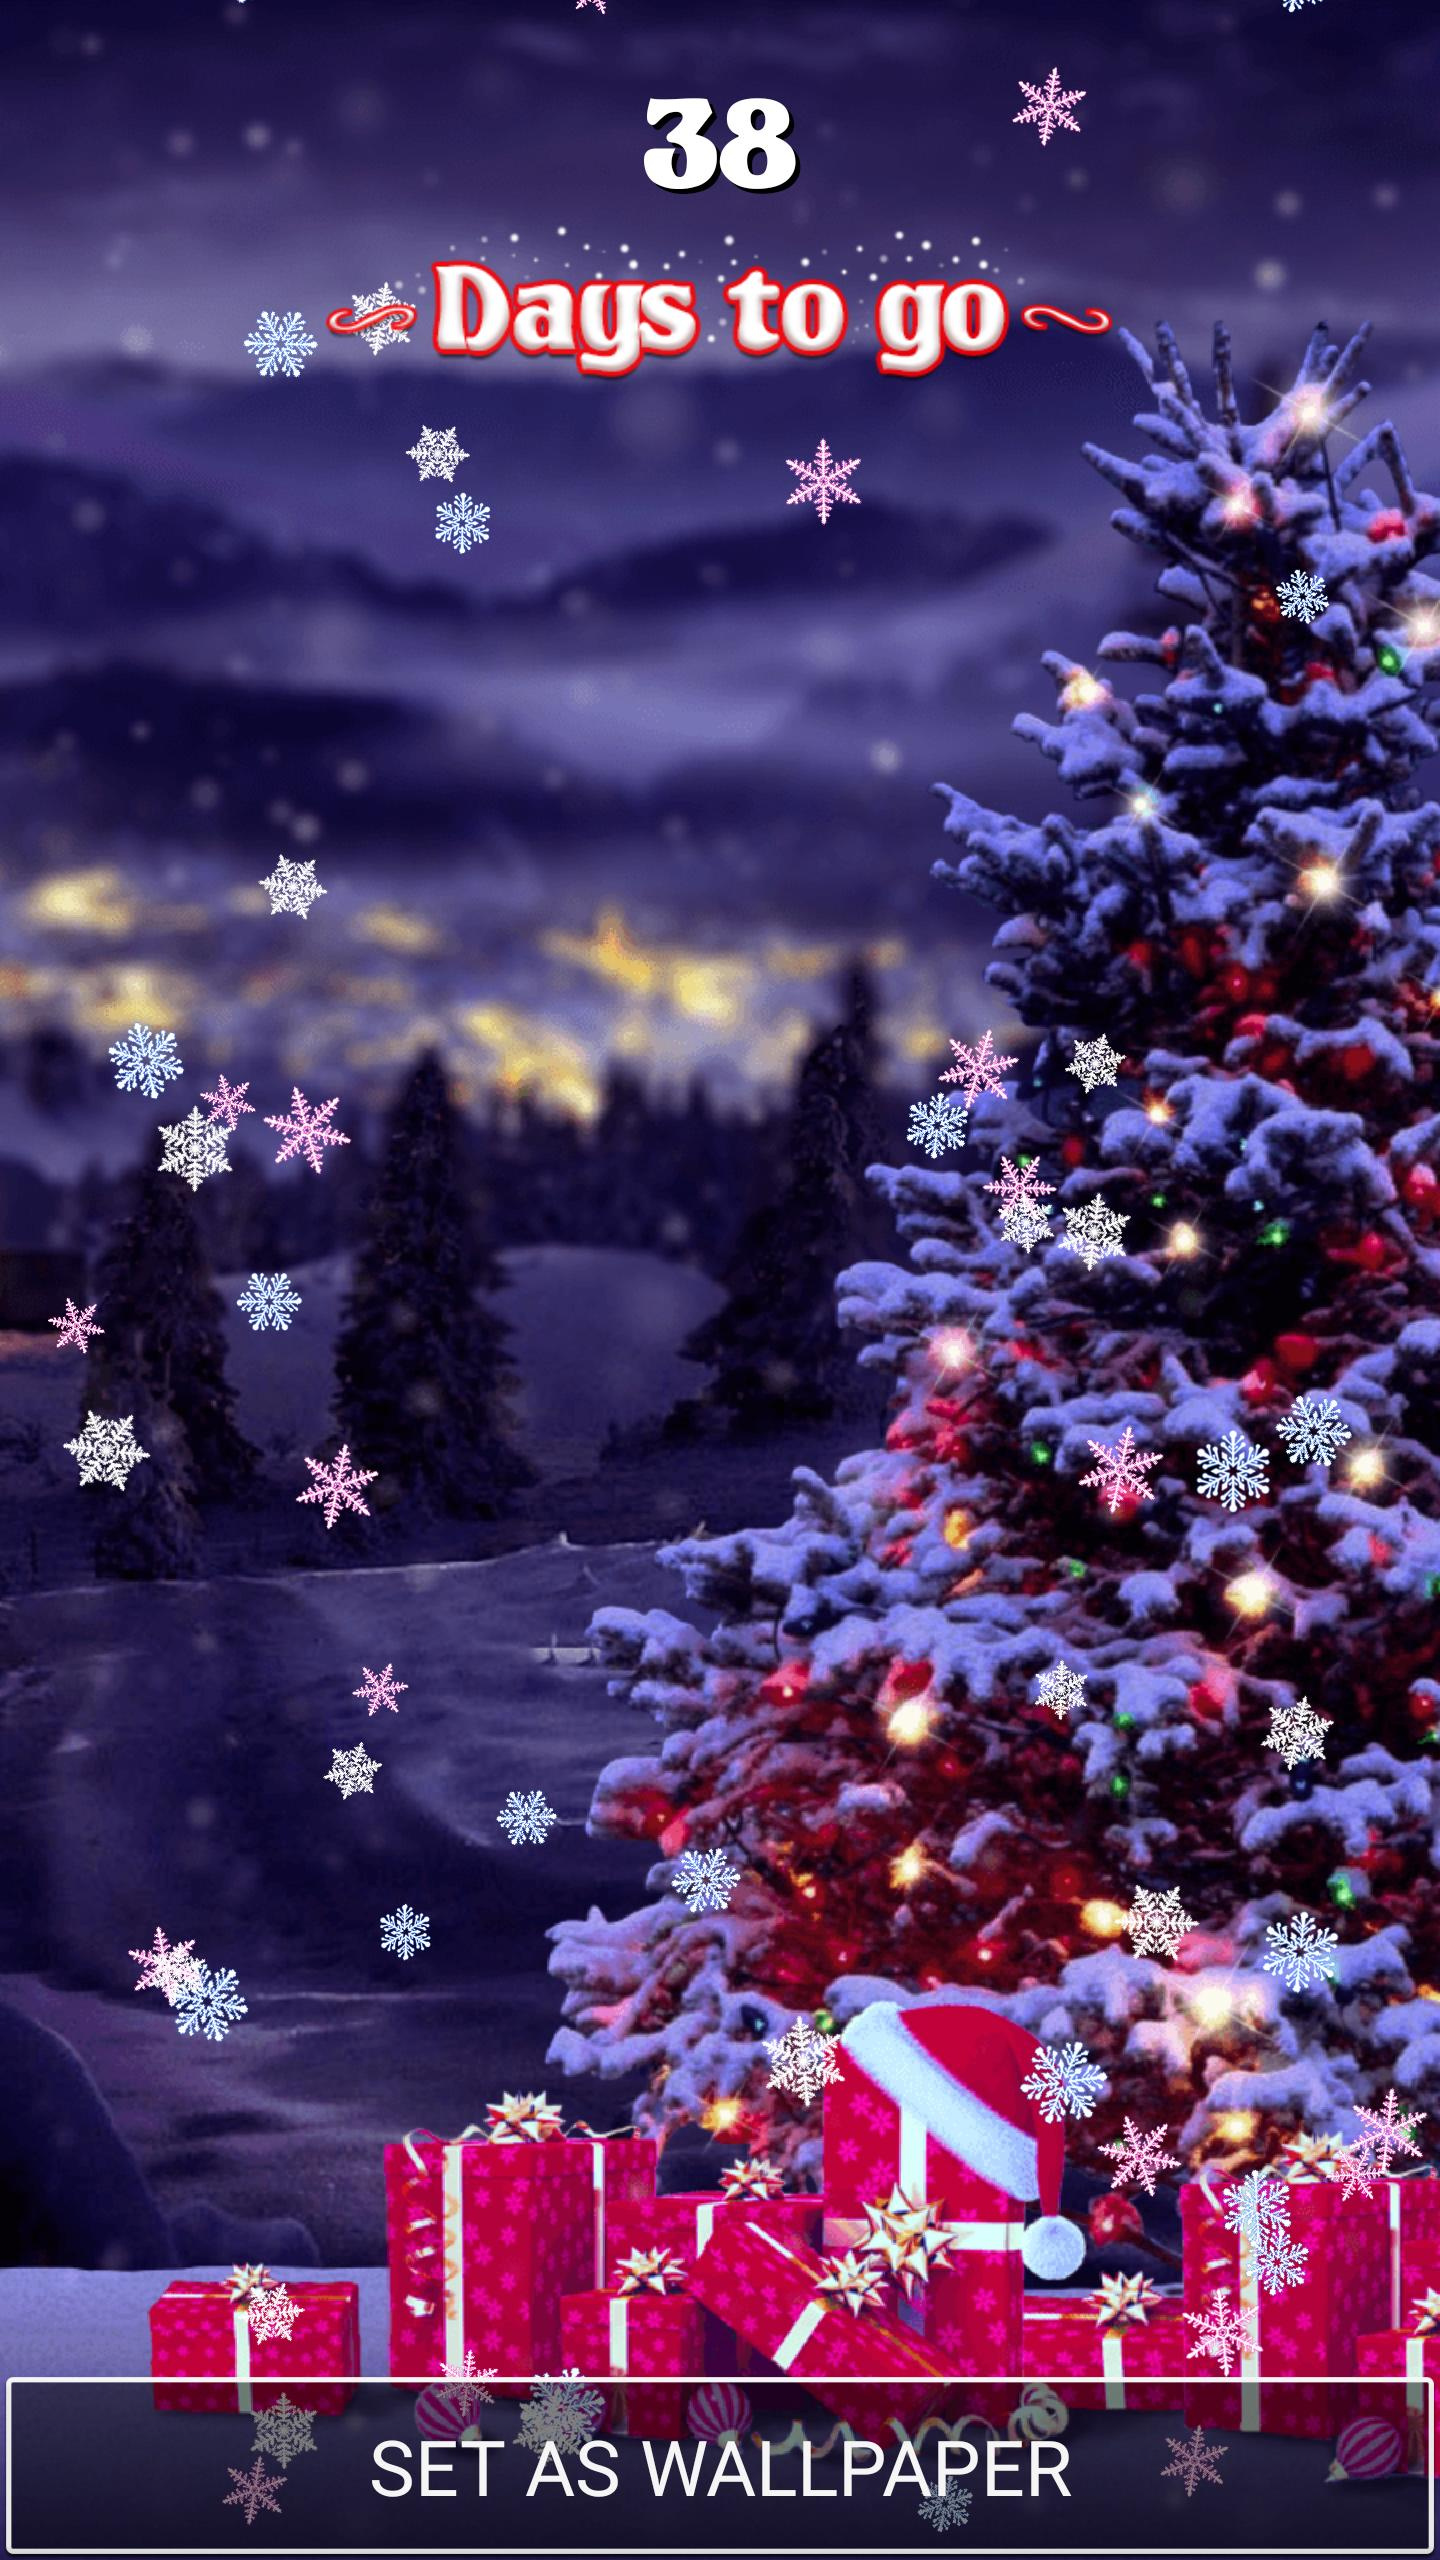 Christmas Countdown Wallpaper For Android APK Download